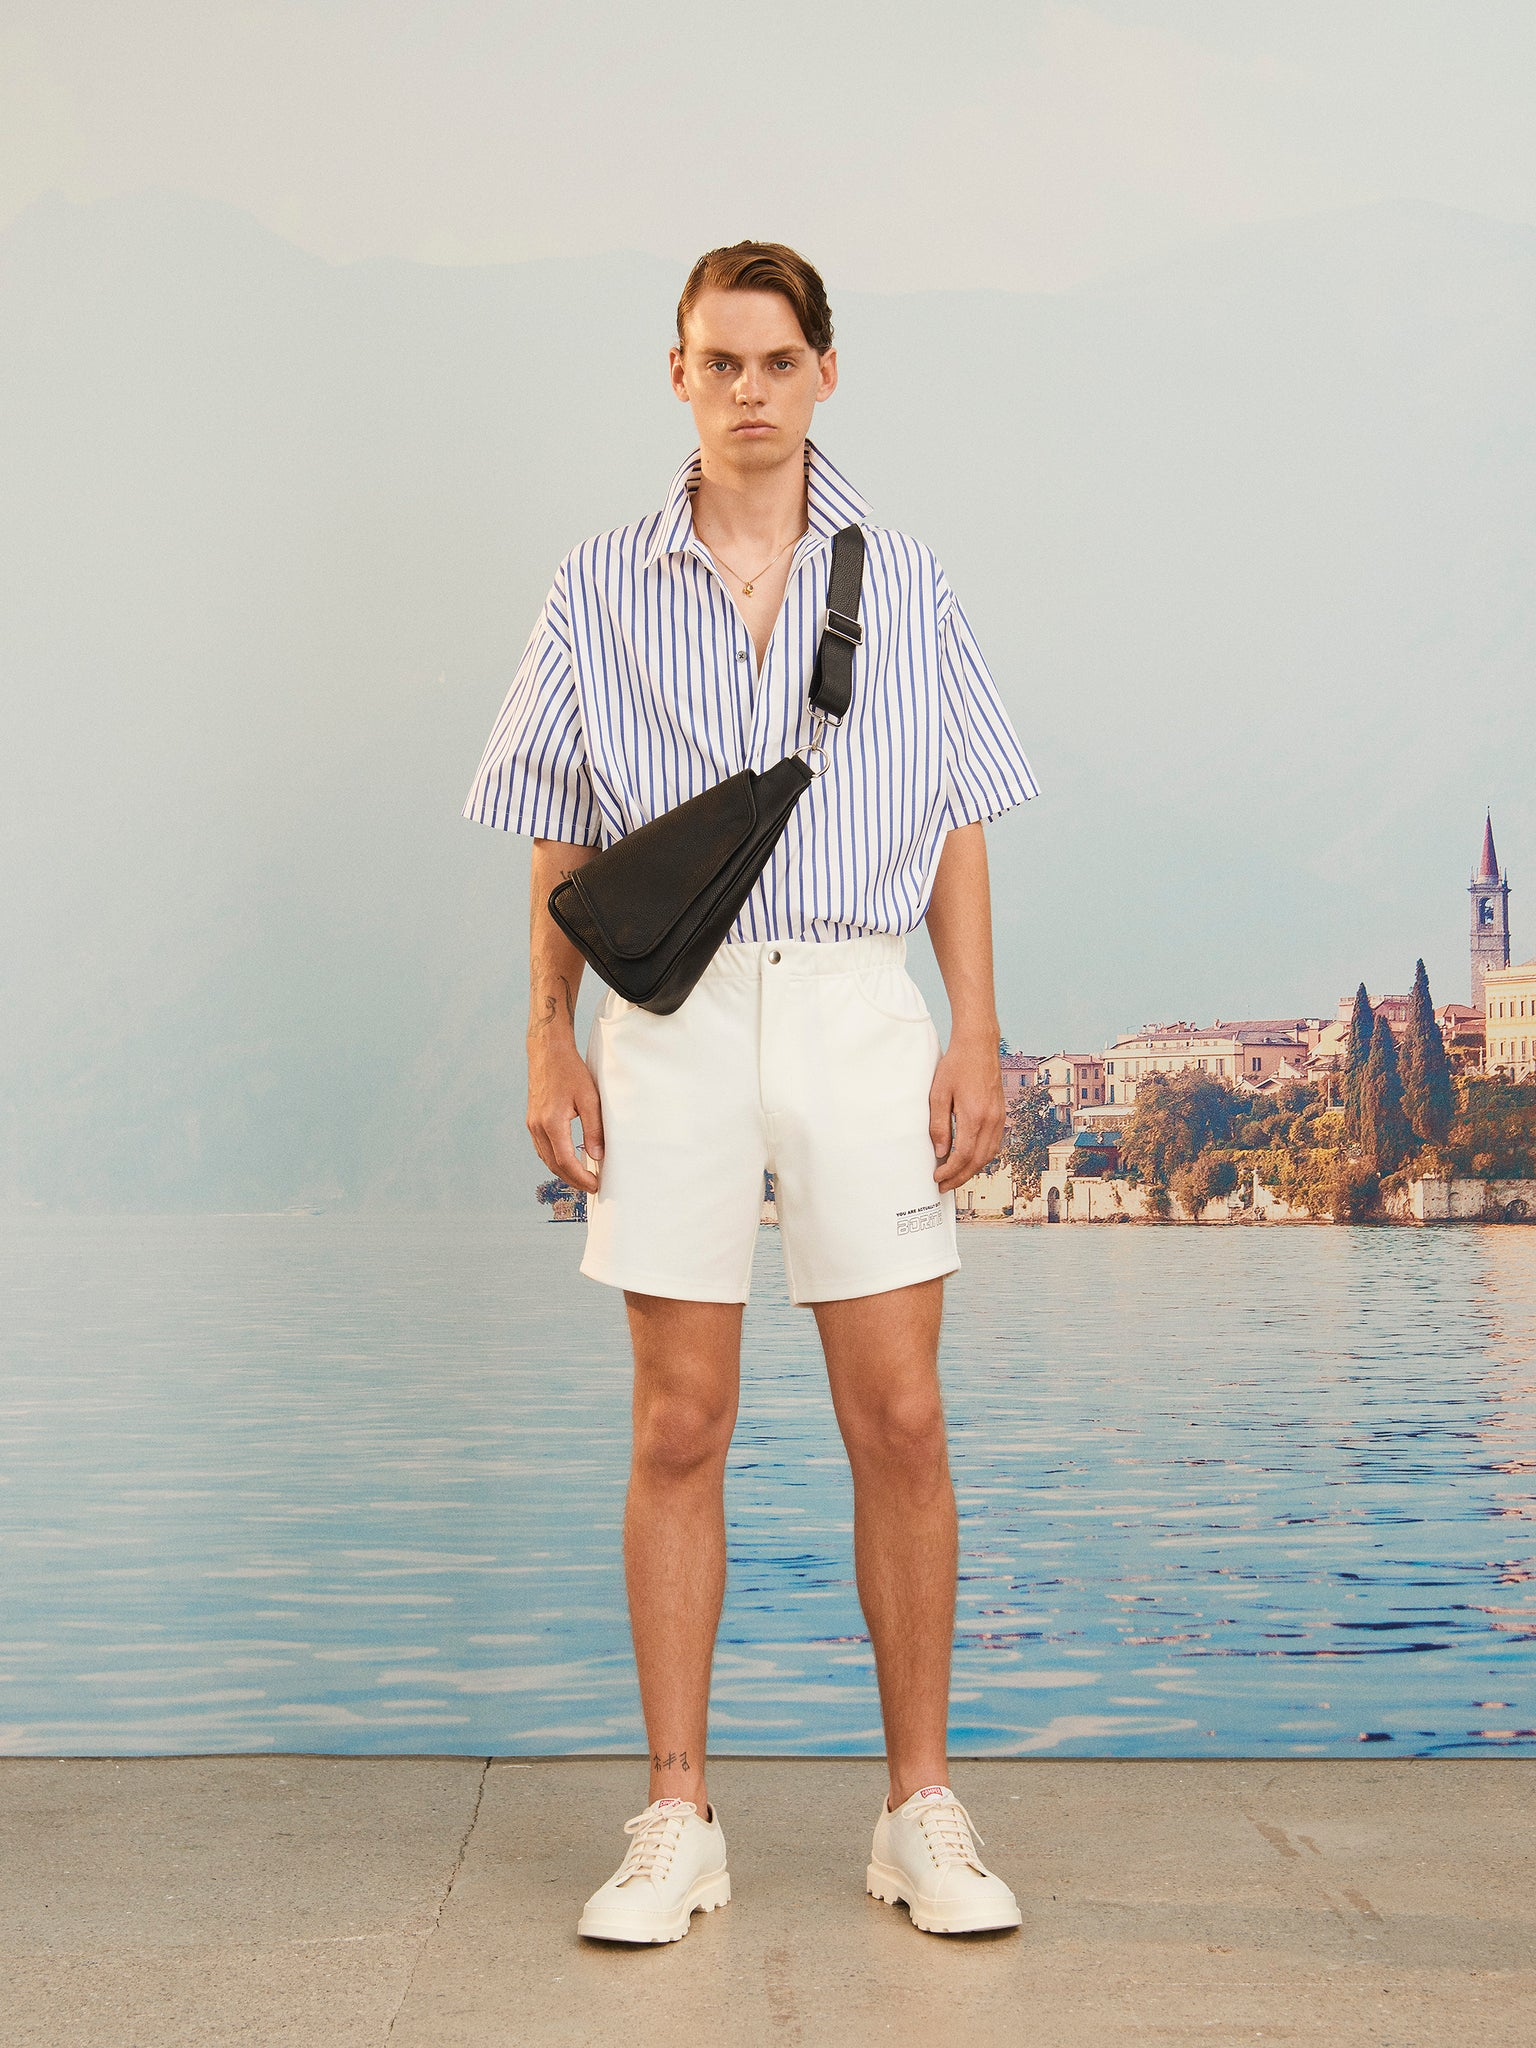 martin Asbjorn ma cotton shirt menswear ss20 spring20 boring lookbook